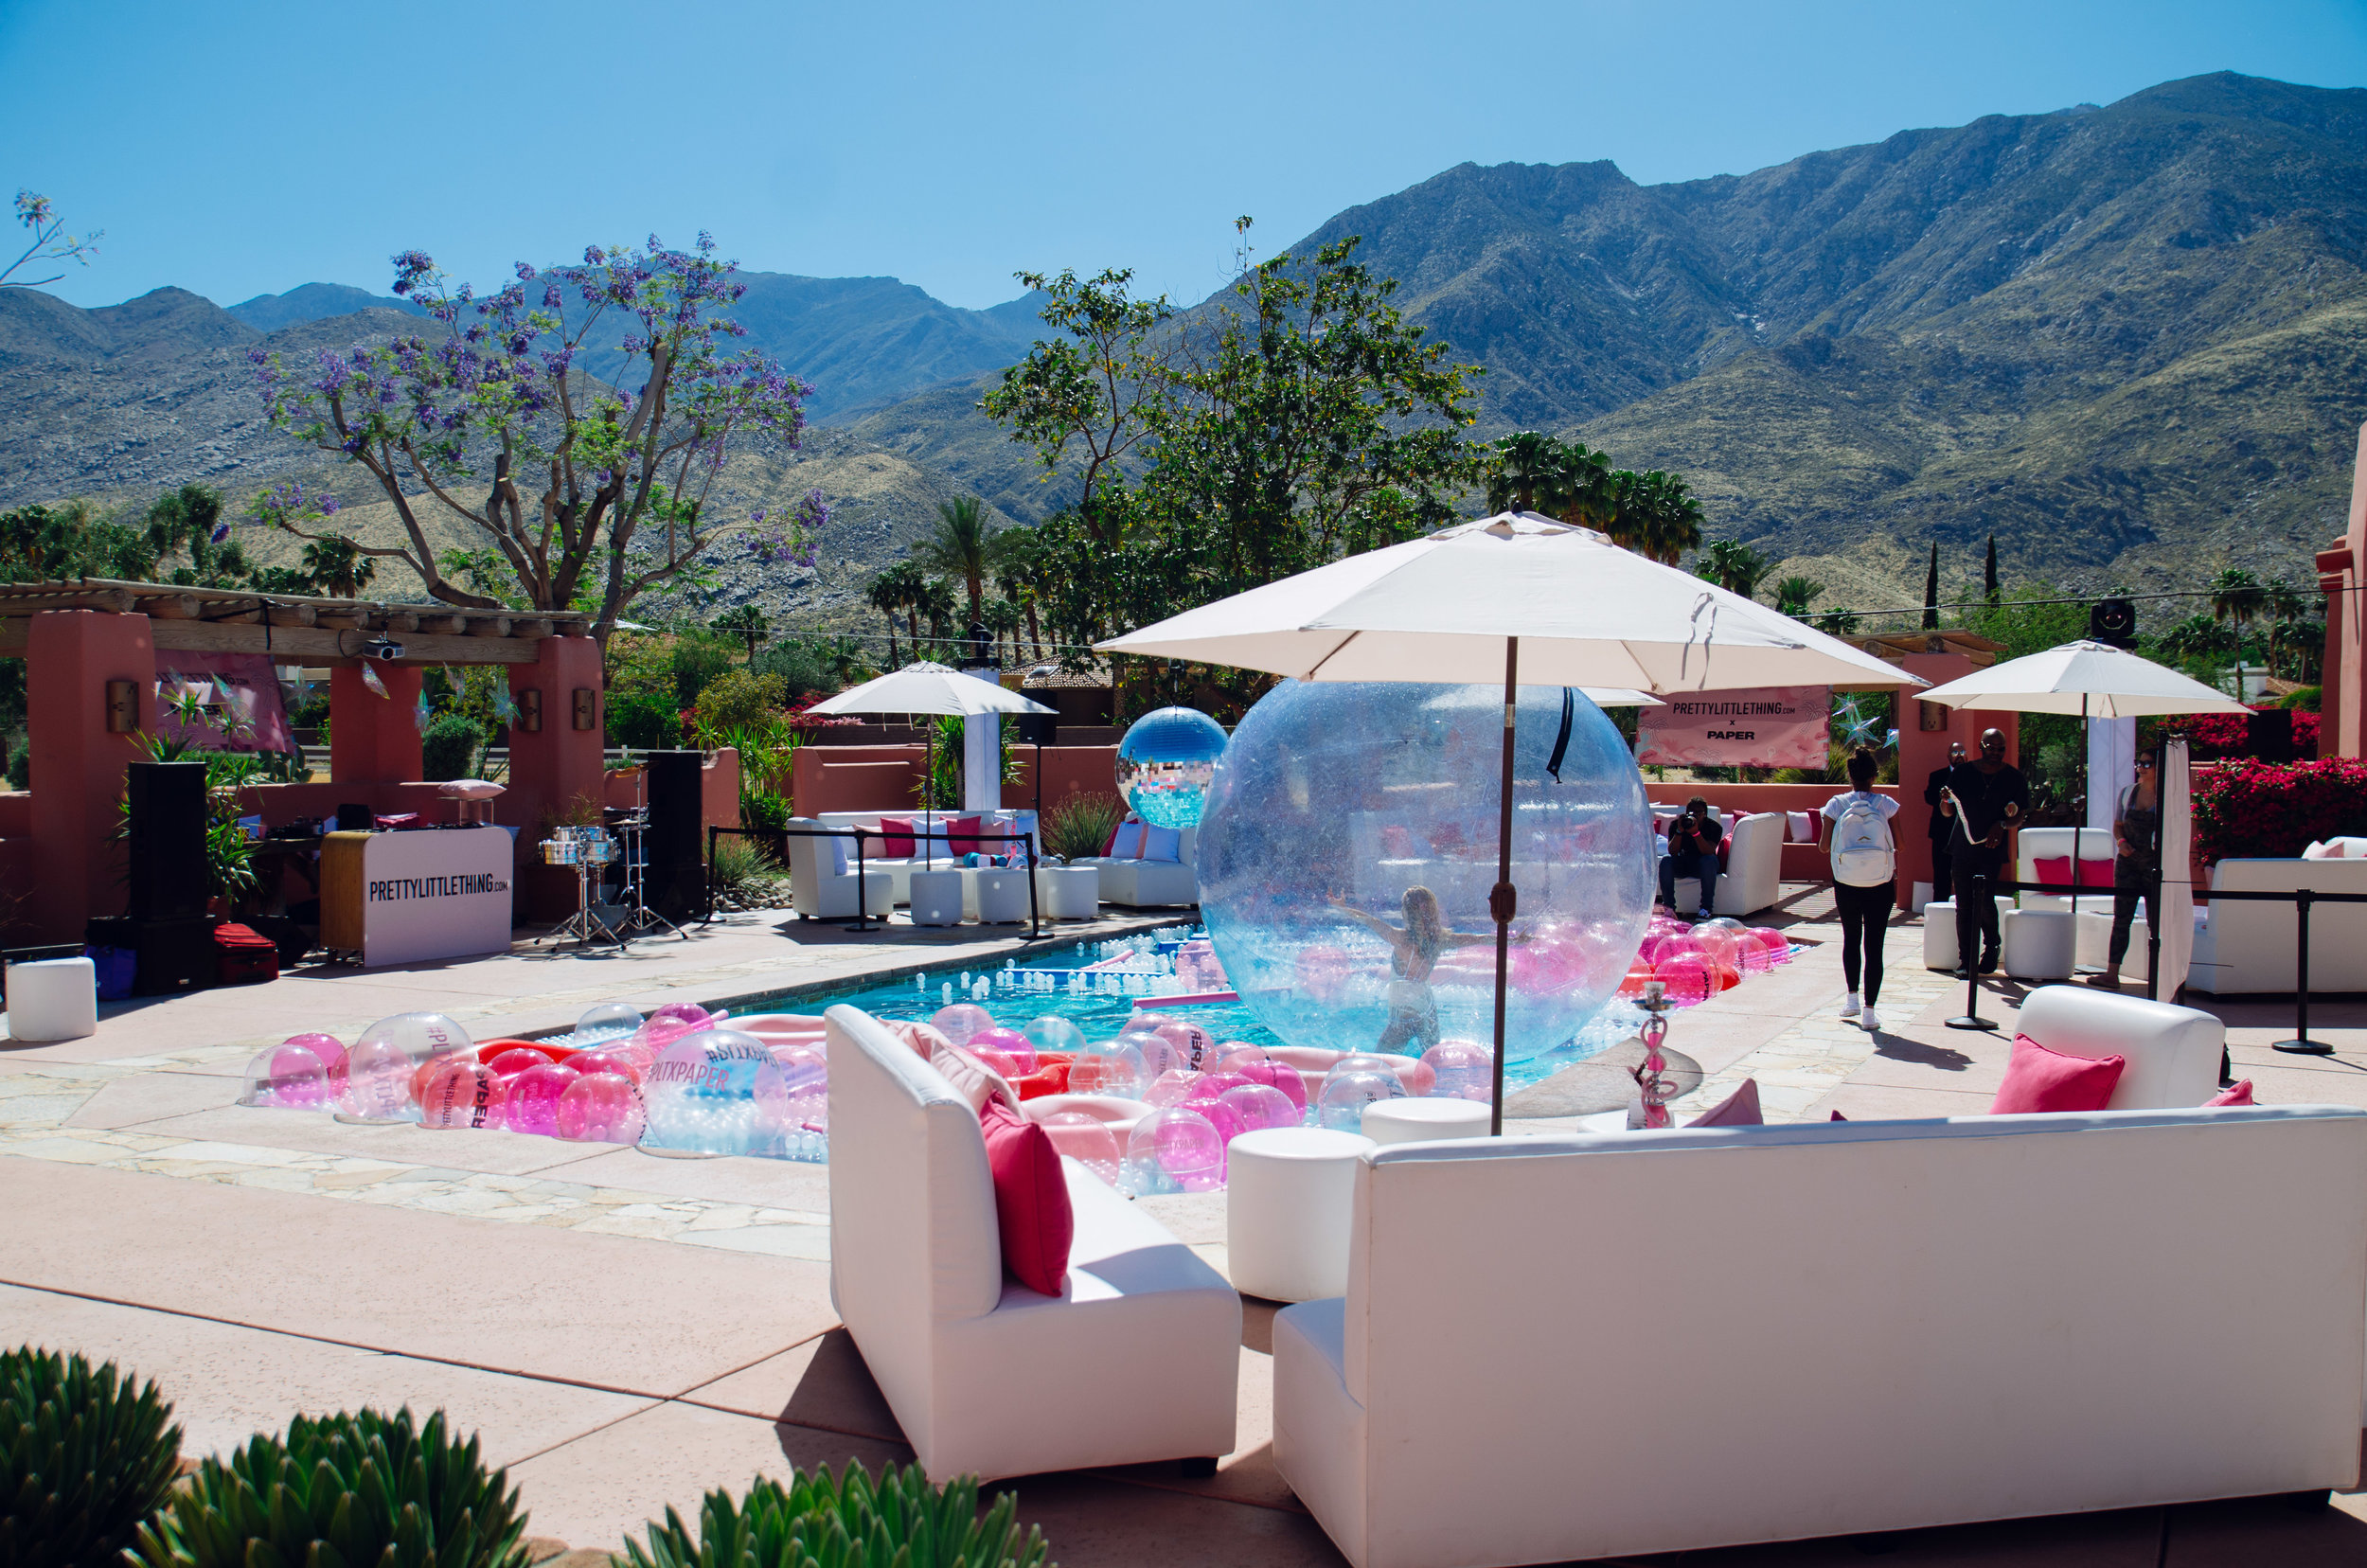 Ultimate Hollywood Coachella Poolside Party pink beach balls fill the pool.jpg